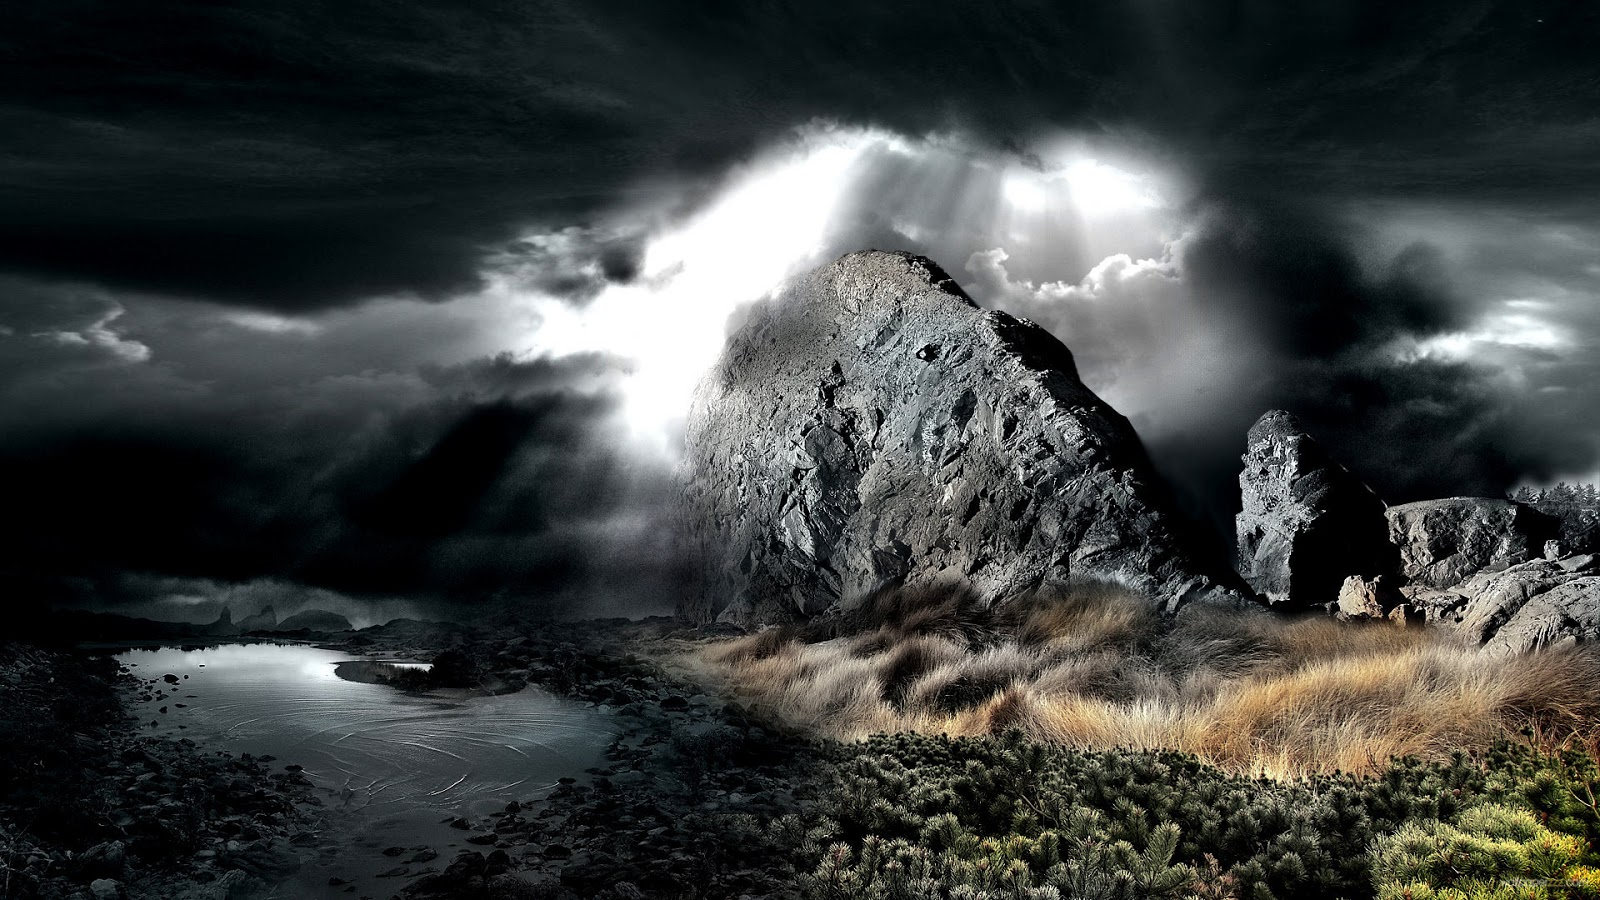 abstract dark nature hd wallpapers � wallpaper202